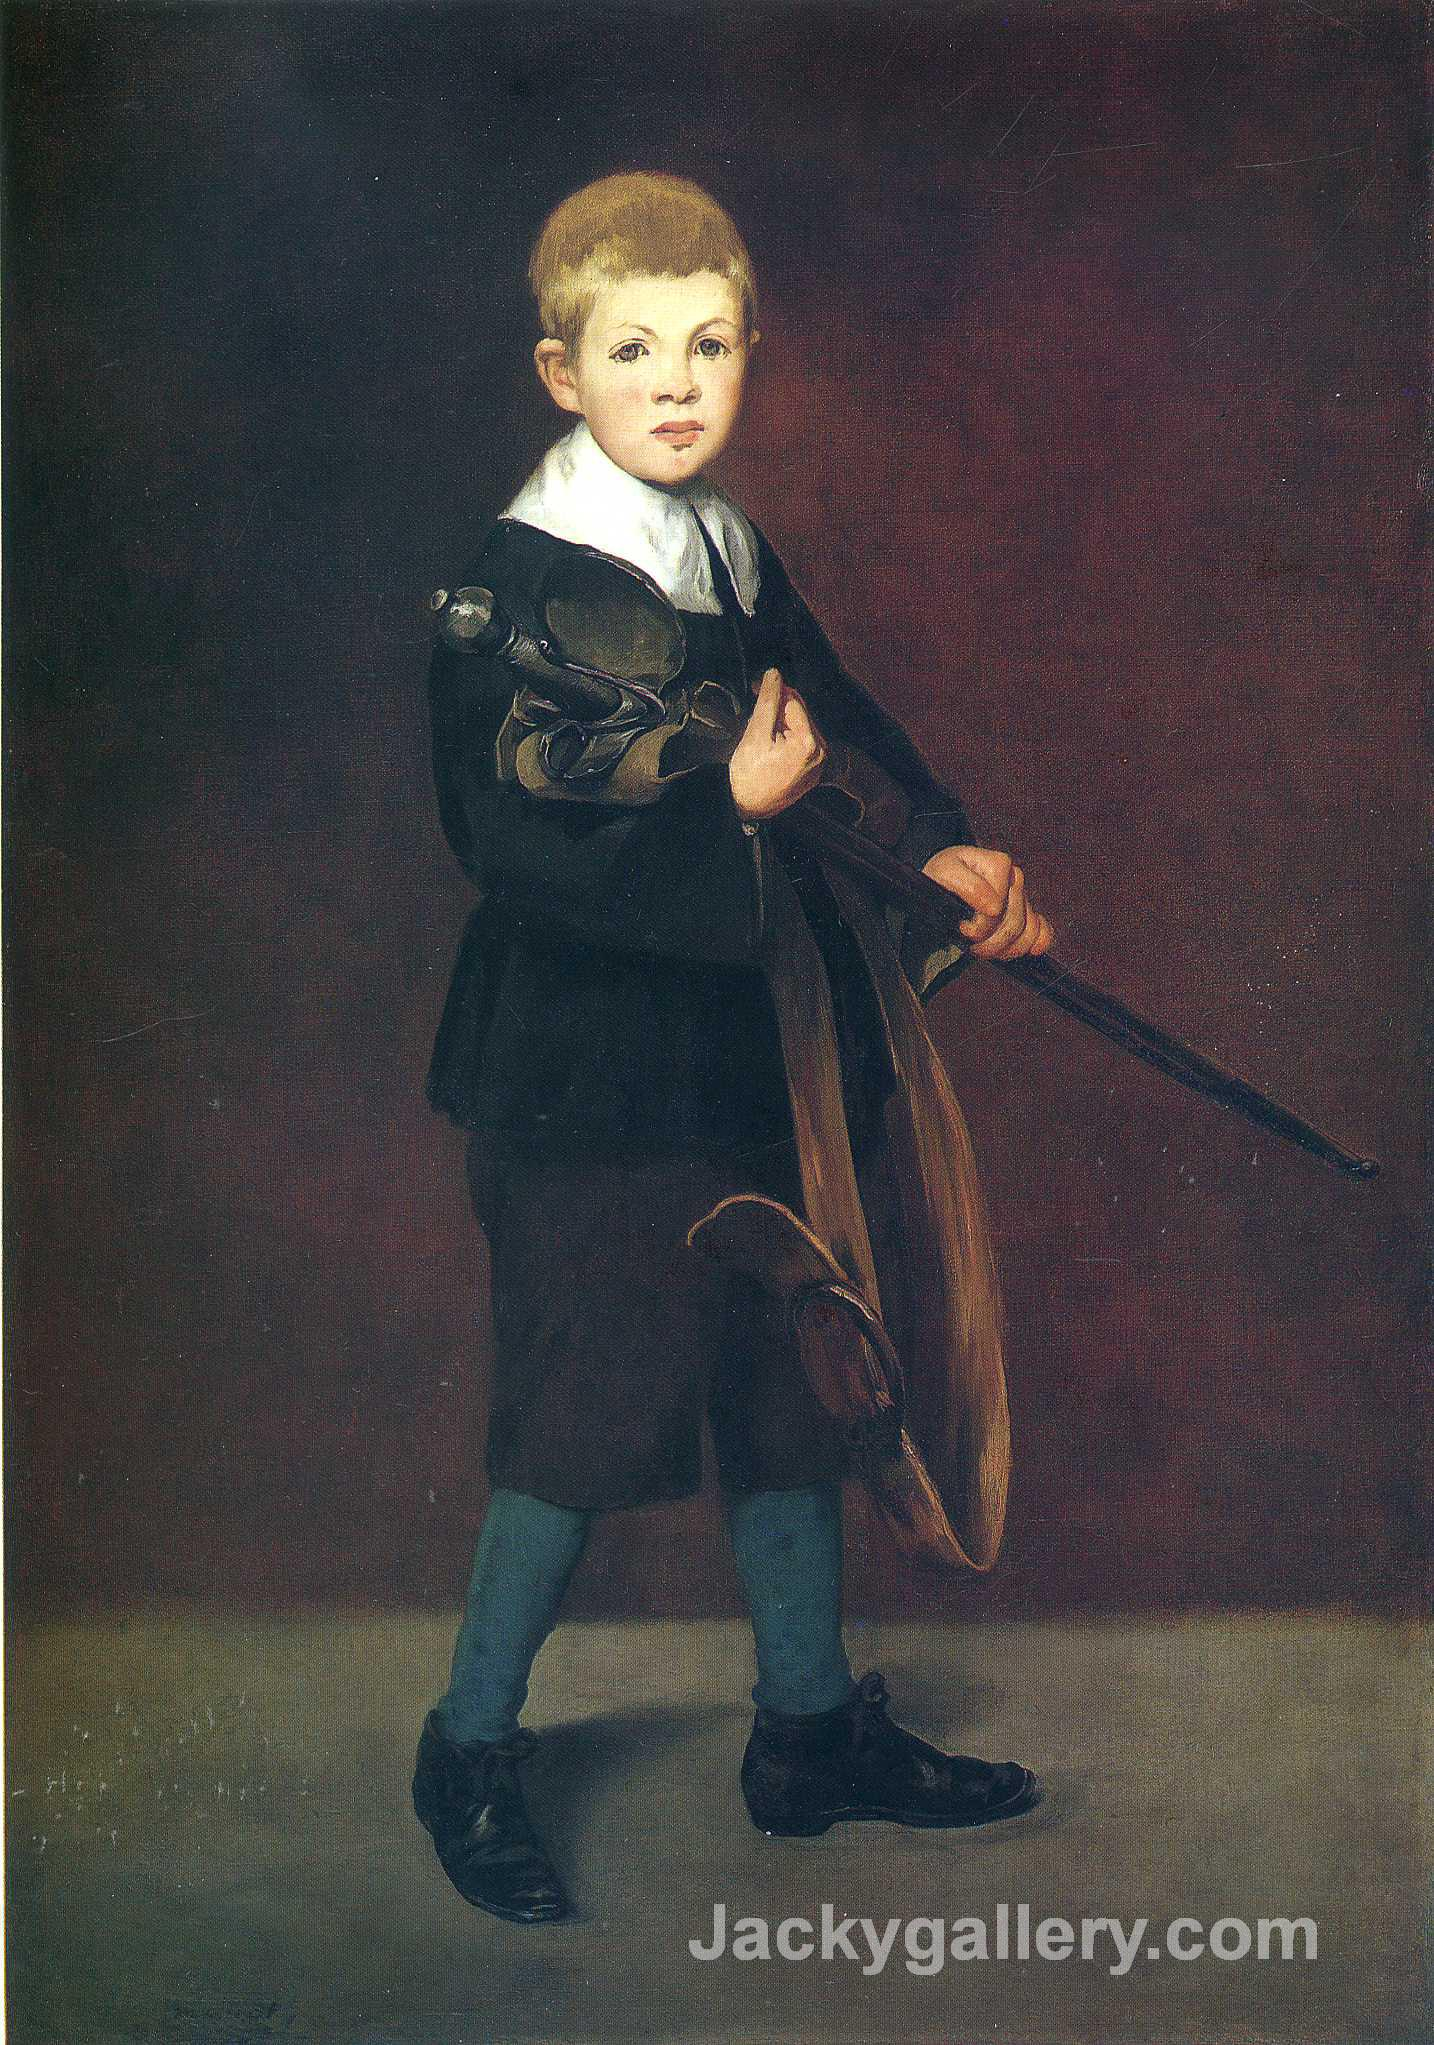 Boy with a Sword by Edouard Manet paintings reproduction